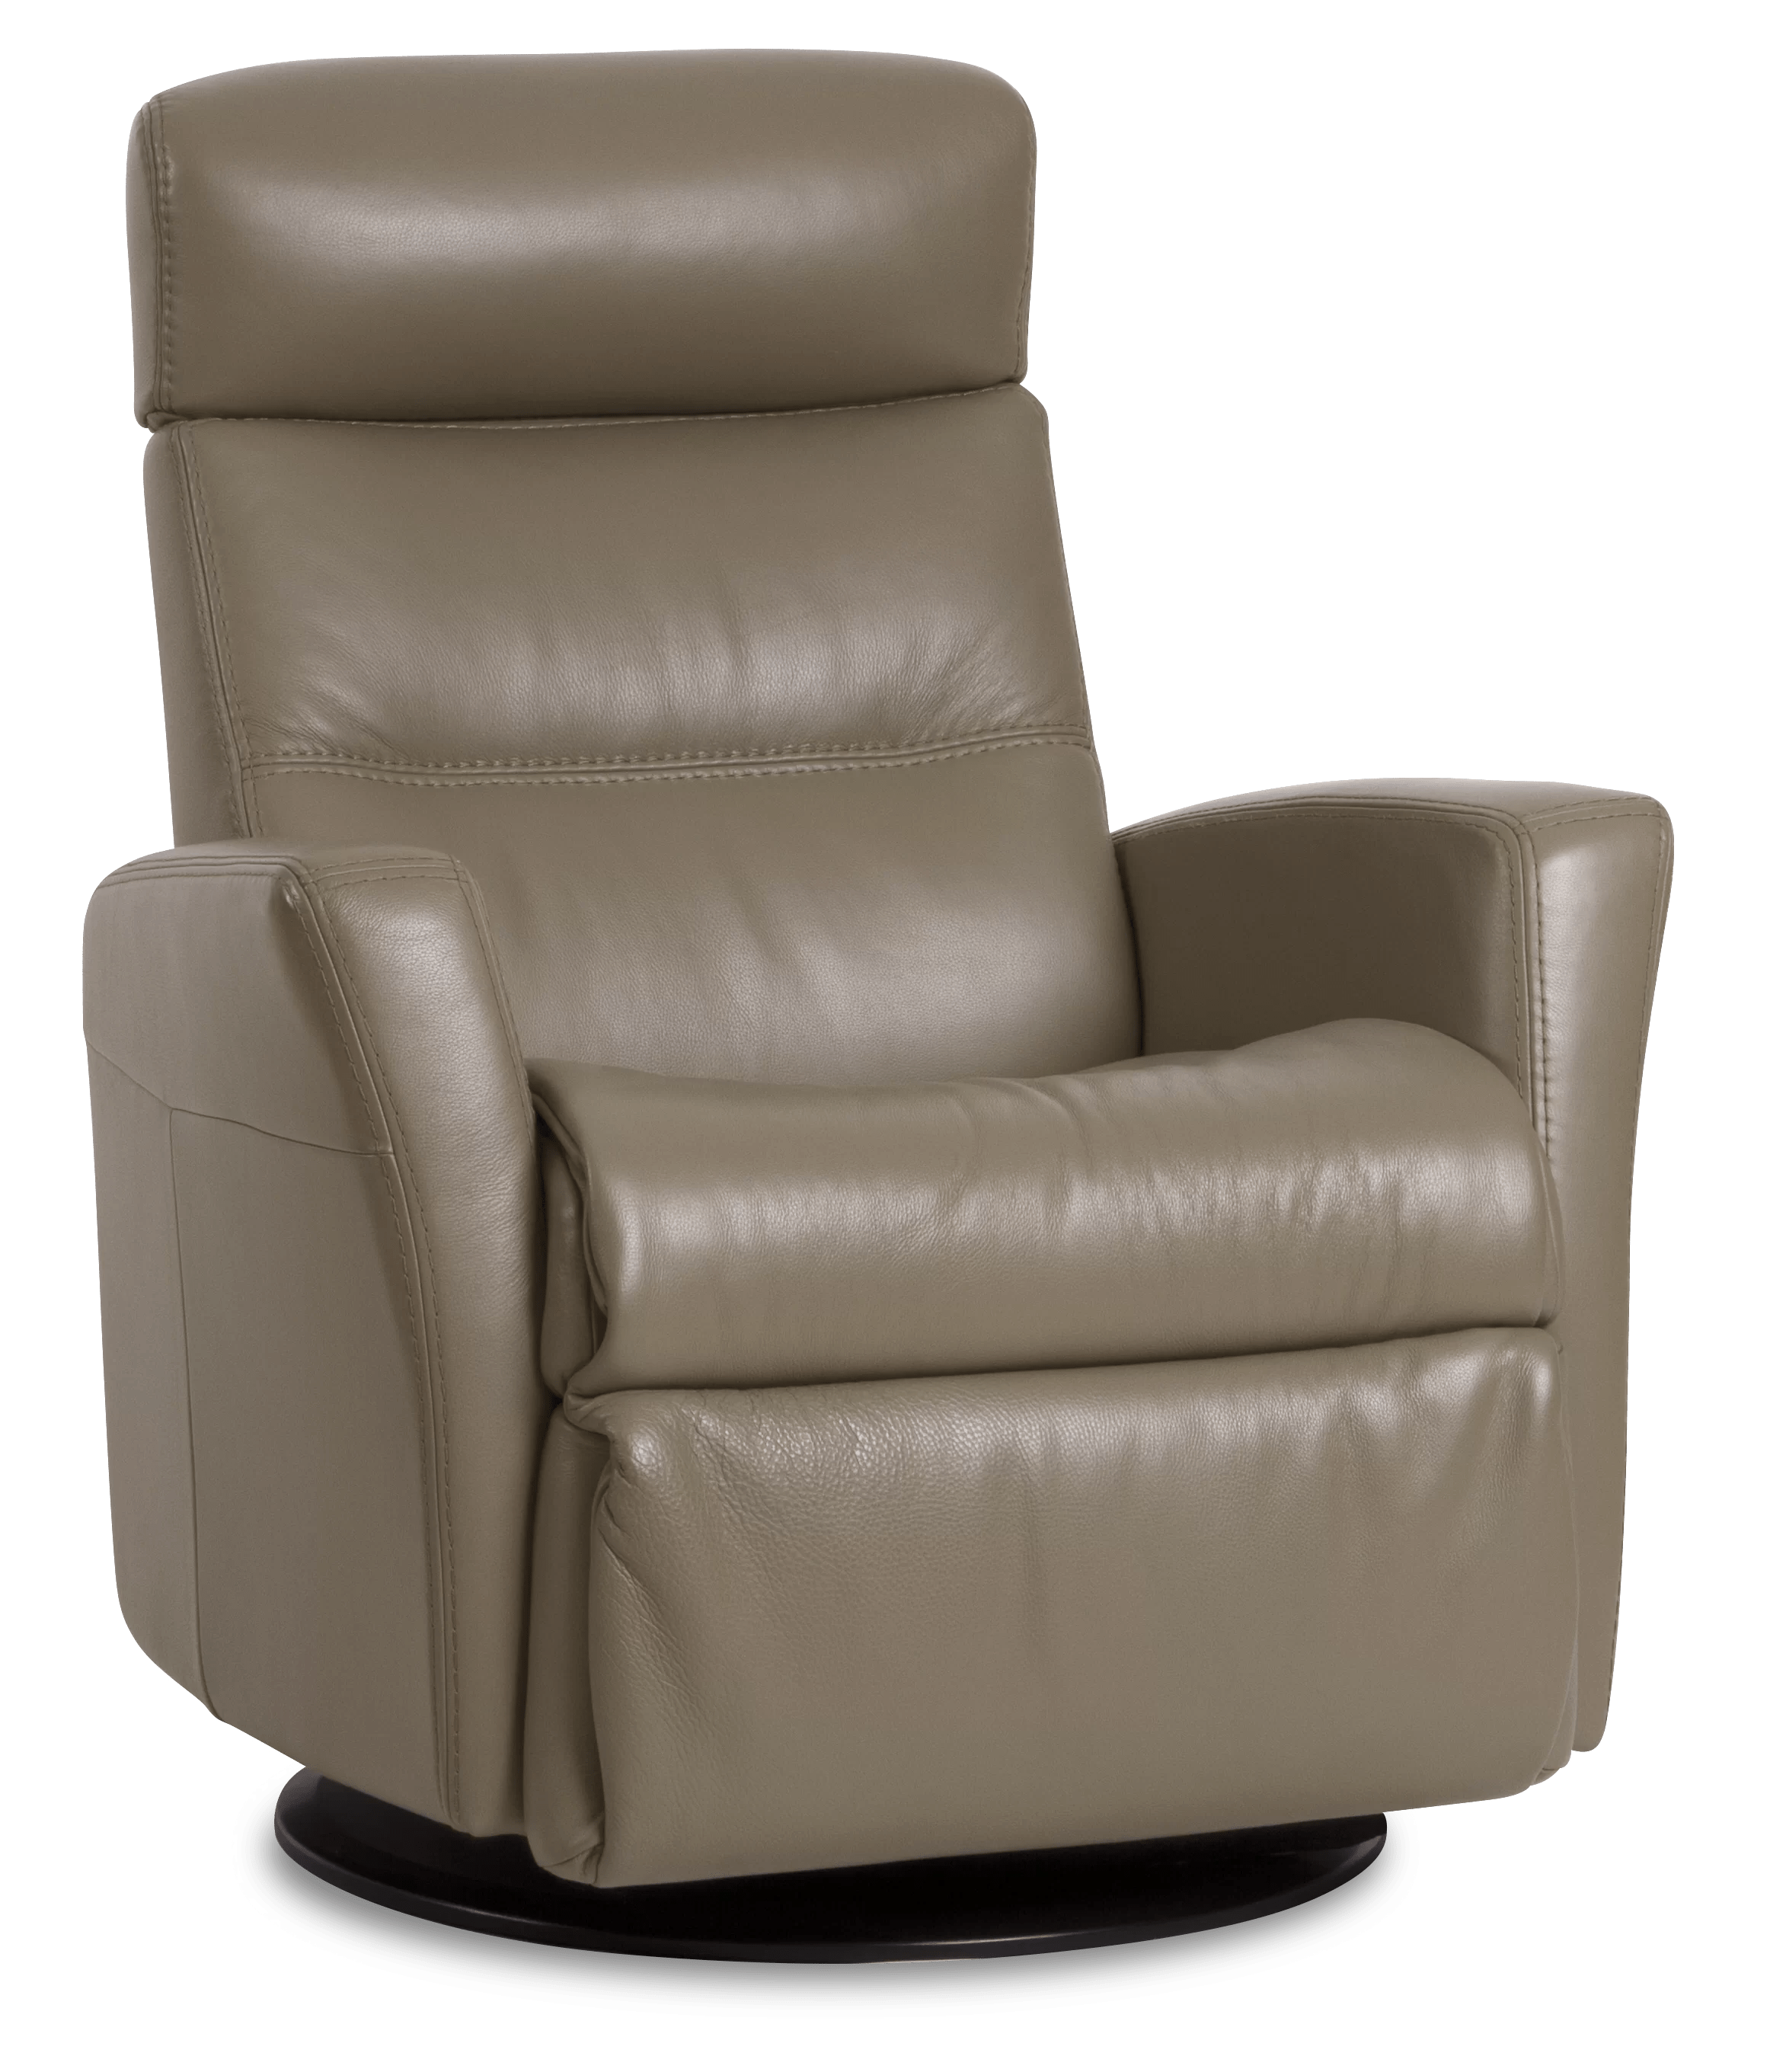 Divani Relaxer Chair Club Recliner Recliners Perigold